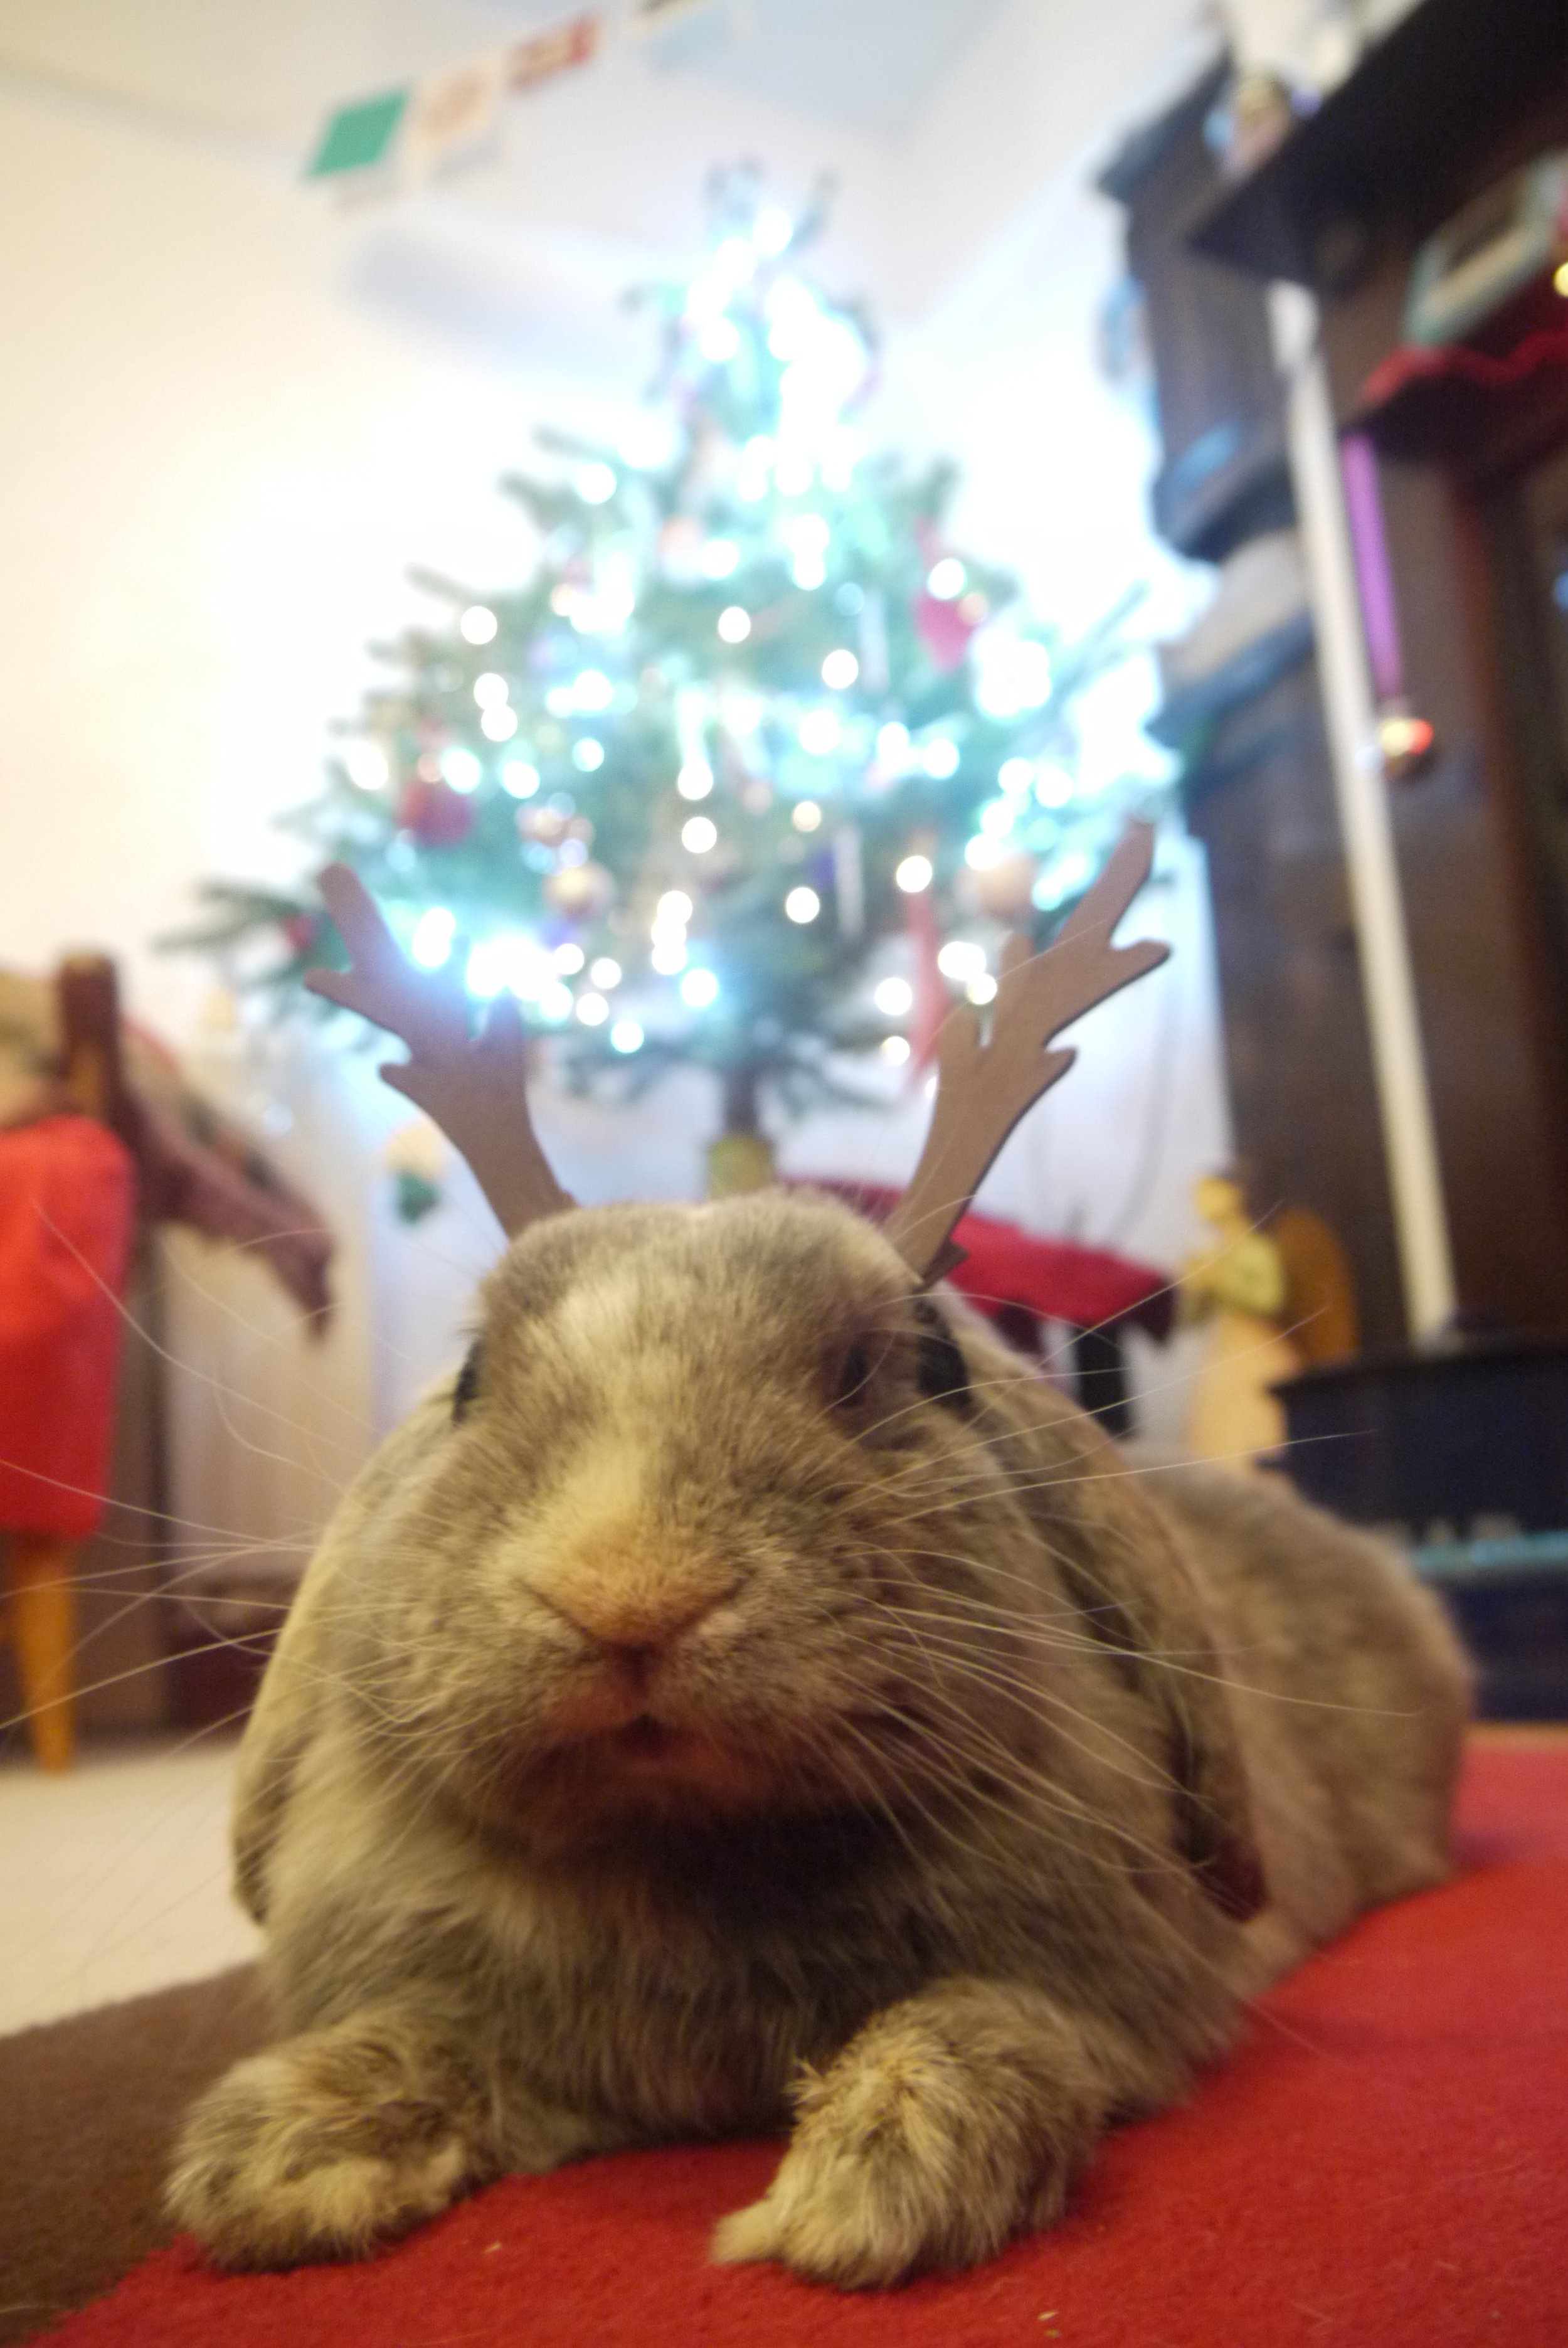 Relaxing Bunny Doesn't Exactly Share a Reindeer's Work Ethic